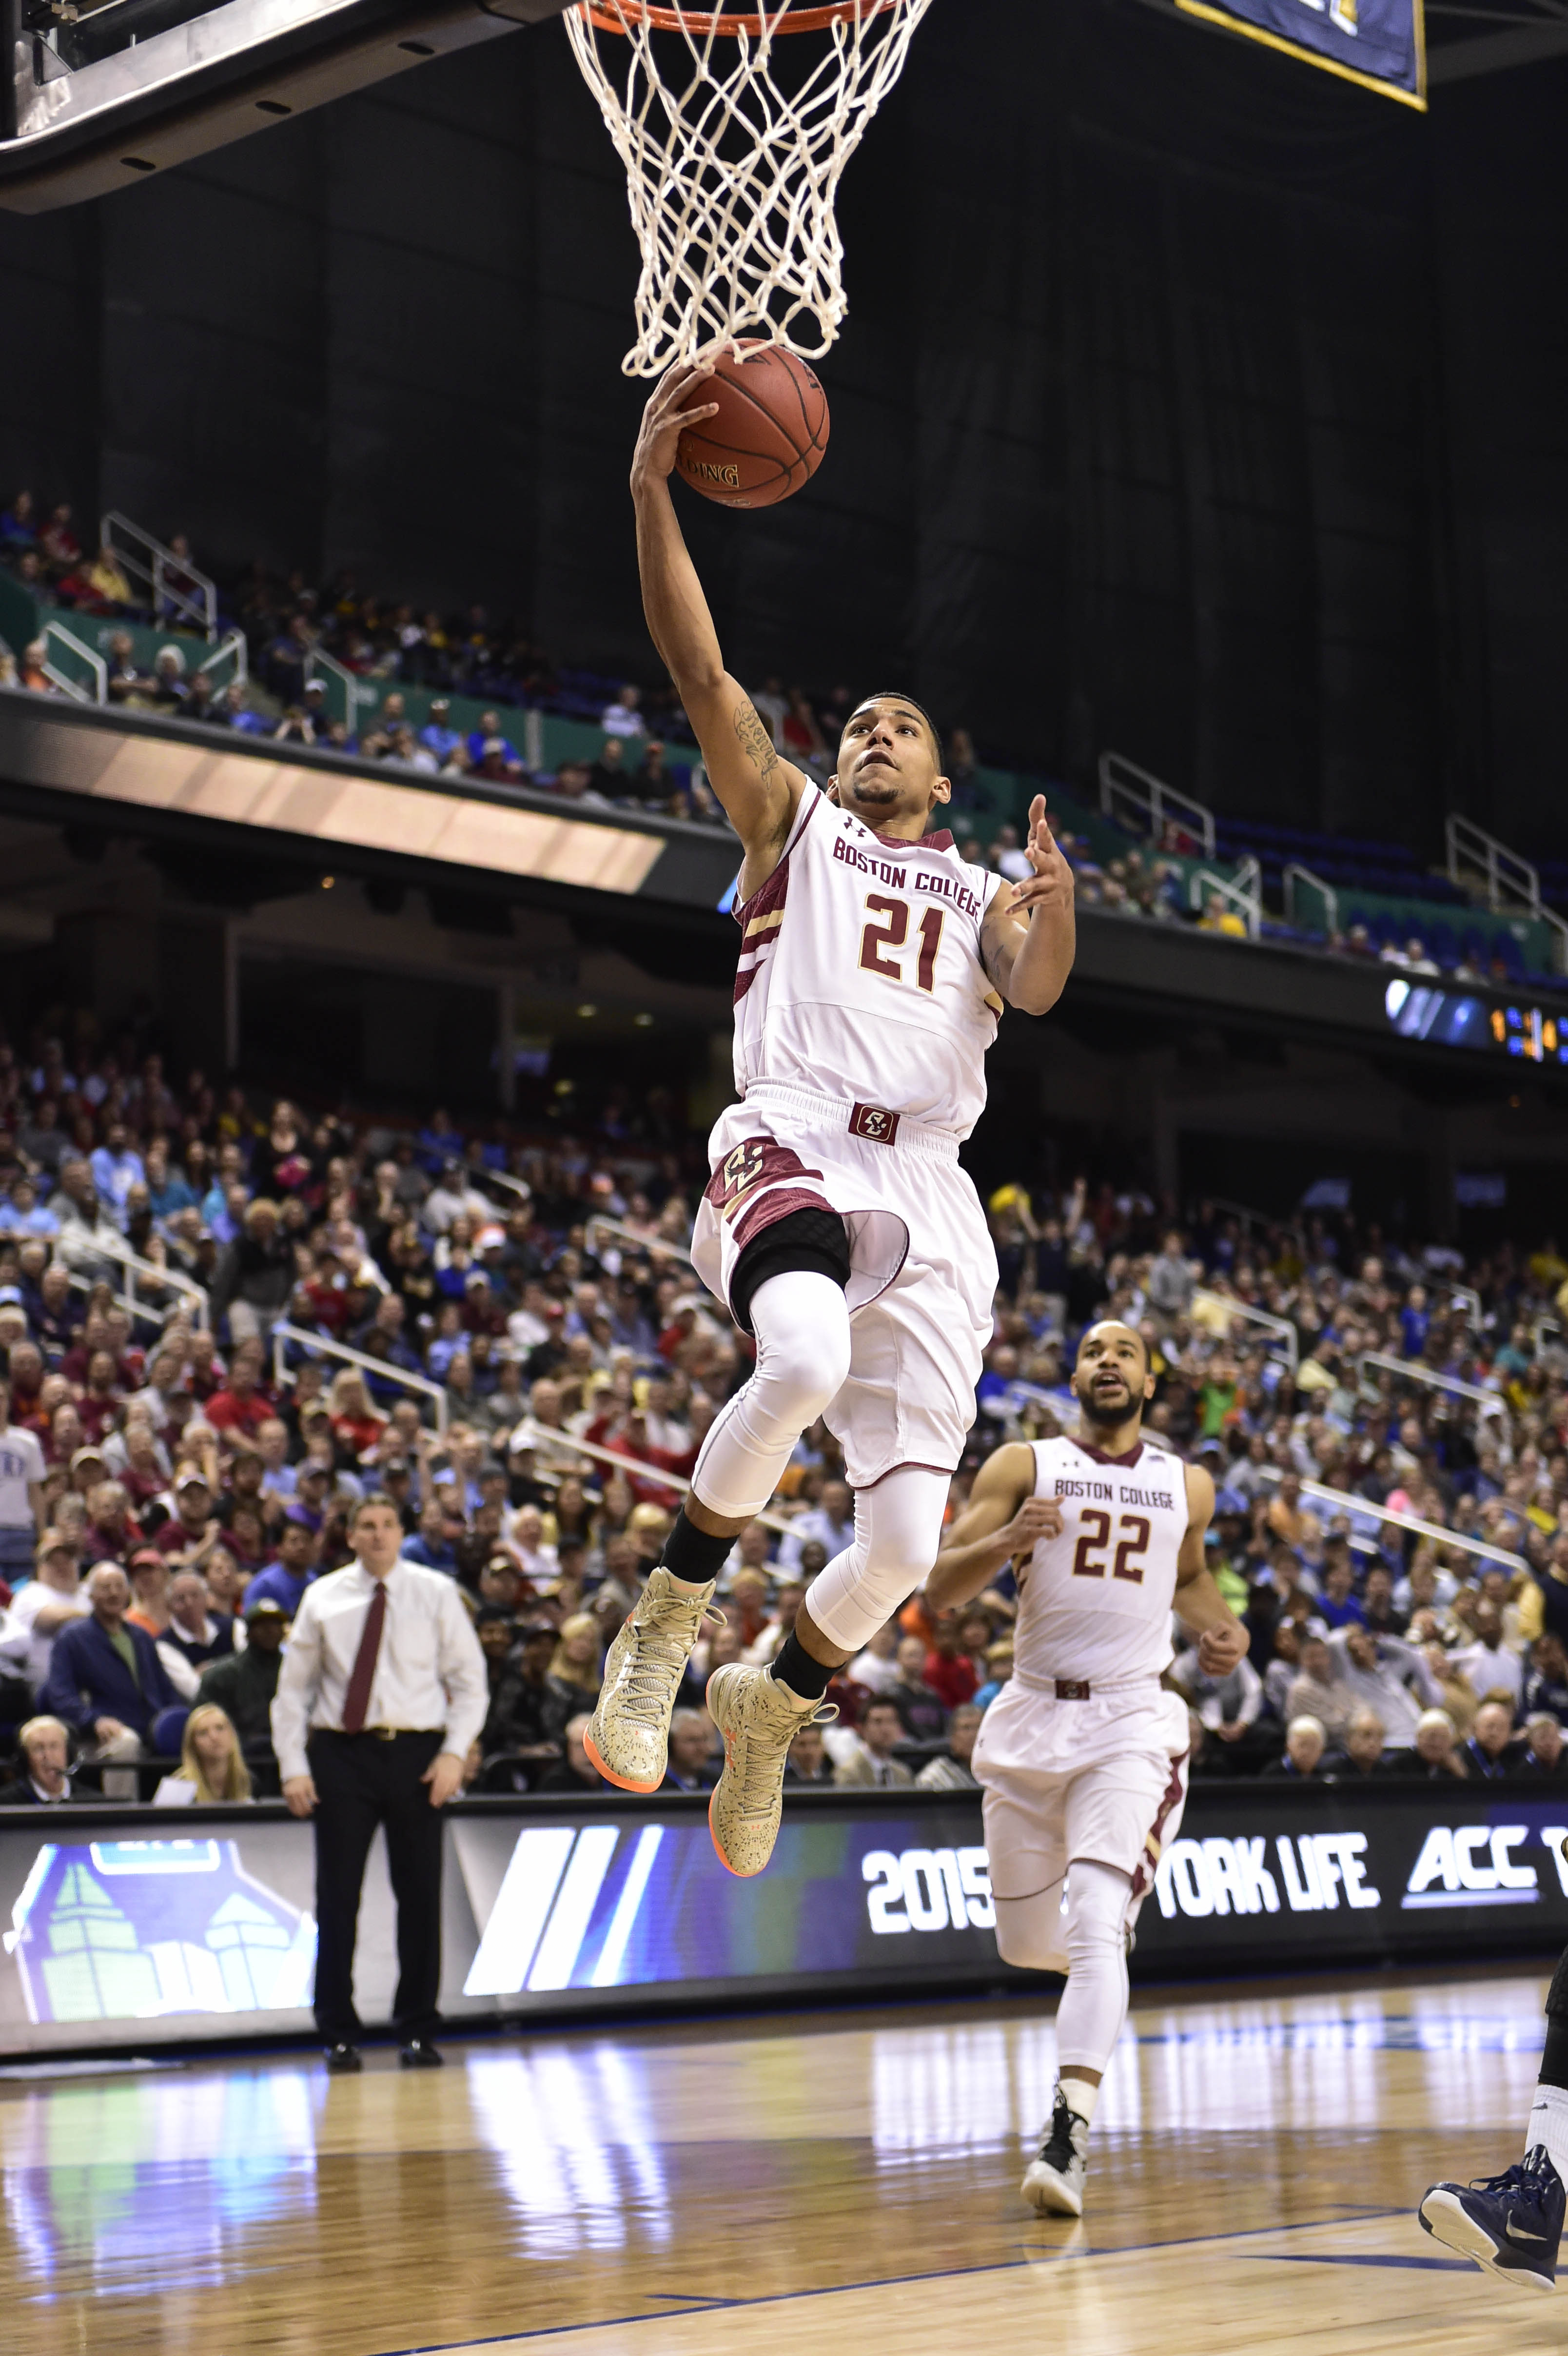 Olivier Hanlan glides in for the game winner in Day 1 ACC Tournament action